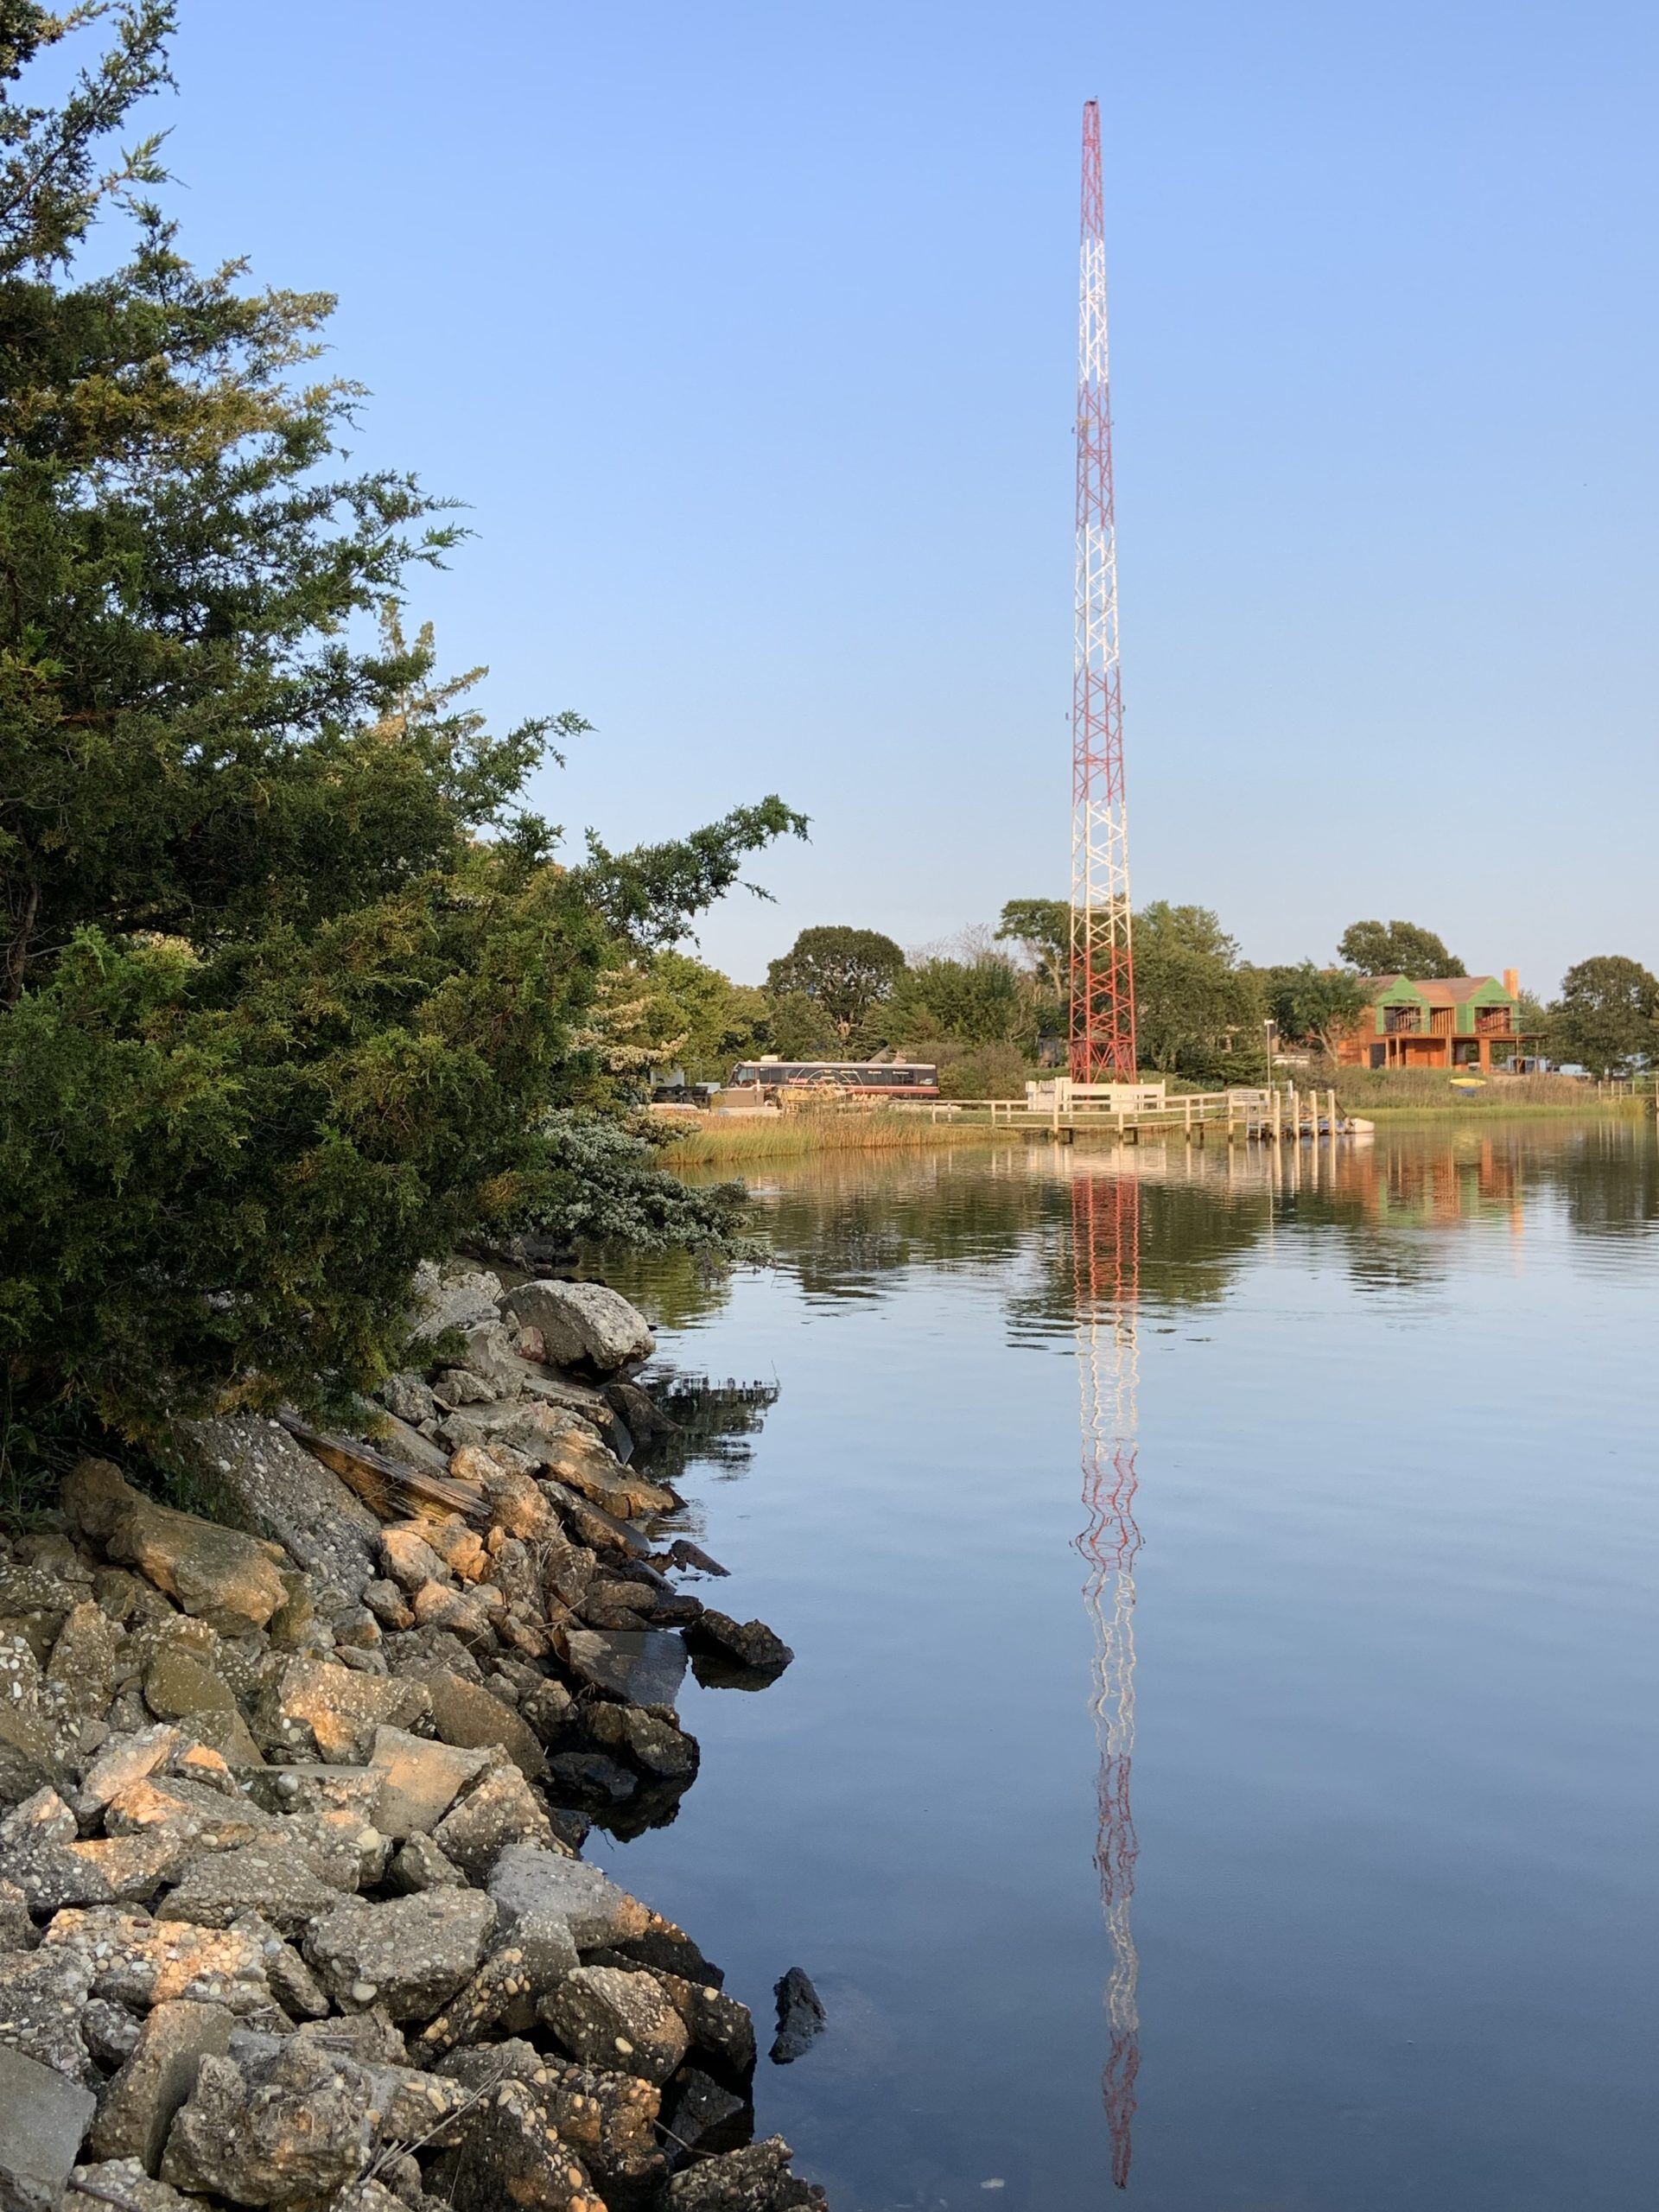 An application has been submitted with Sag Harbor Village to  replace the WLNG radio tower with a monopole that could provide space for up to 18 concealed antennas for cell service and other uses. STEPHEN J. KOTZ